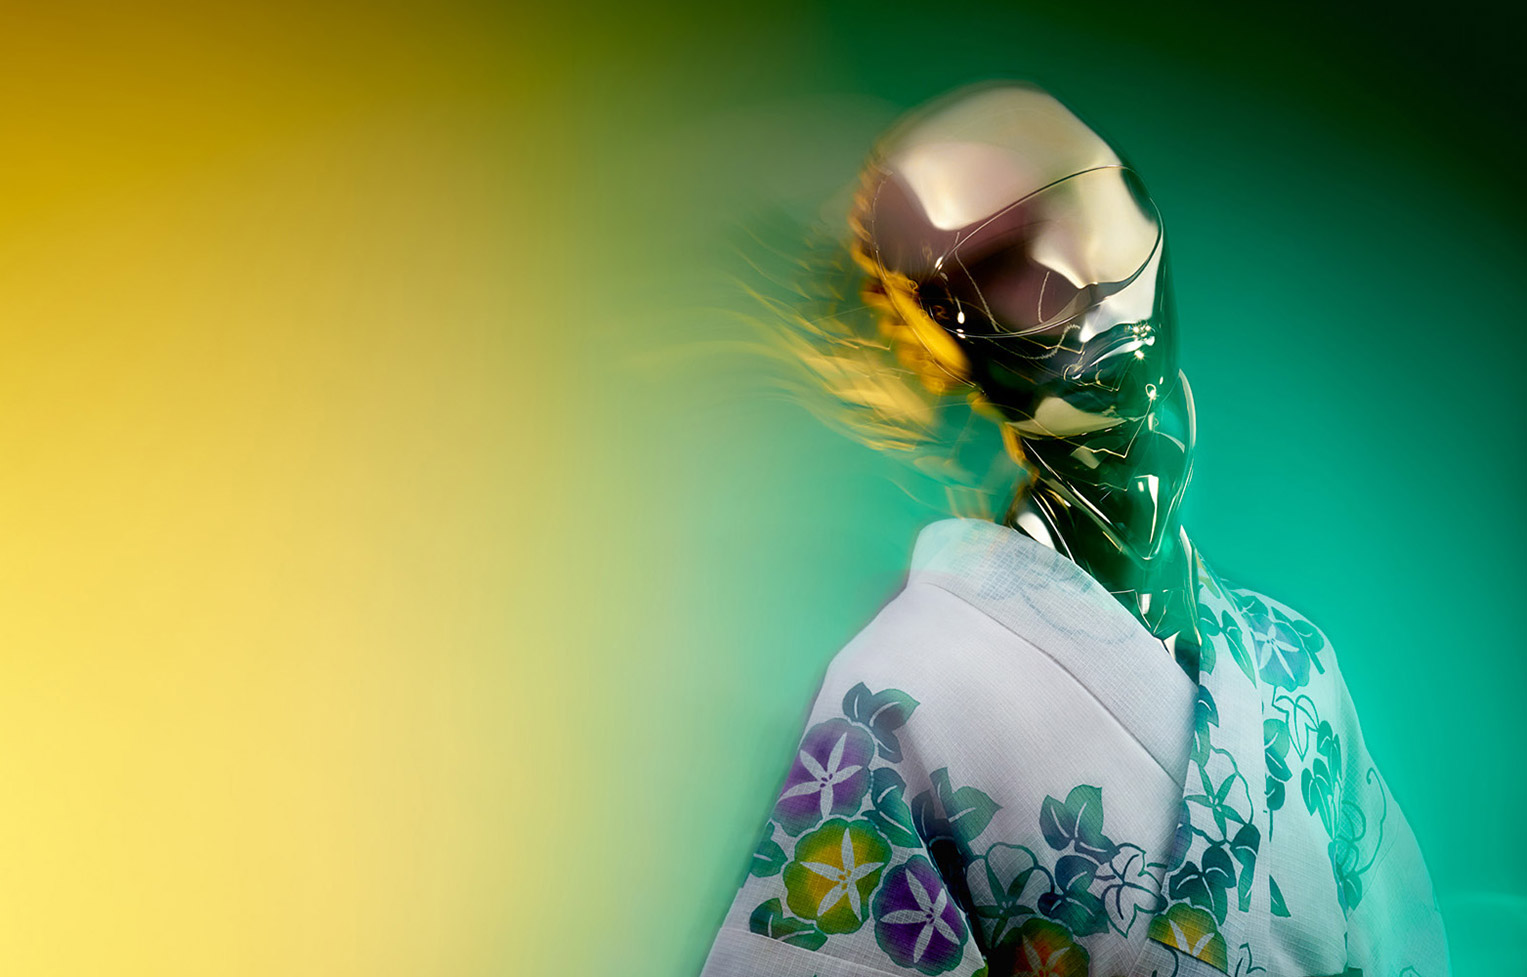 Kimono Roboto by Warren Du Preez and Nick Thornton Jones